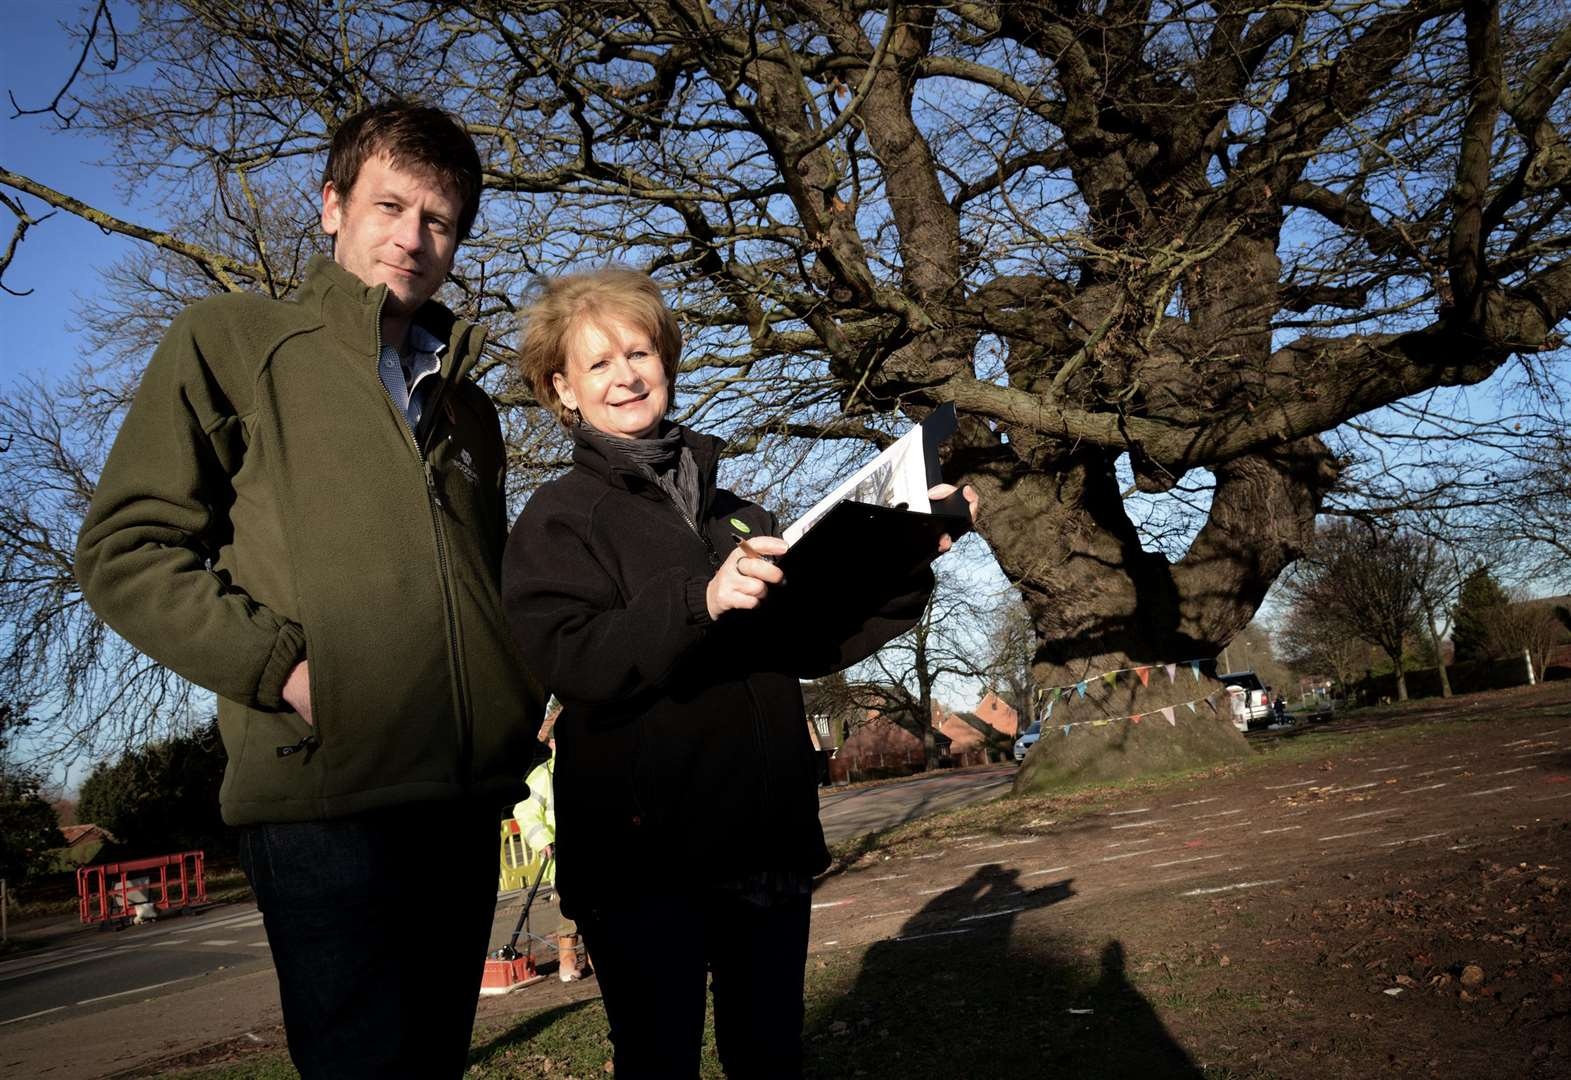 Iconic oak tree to be saved for generations